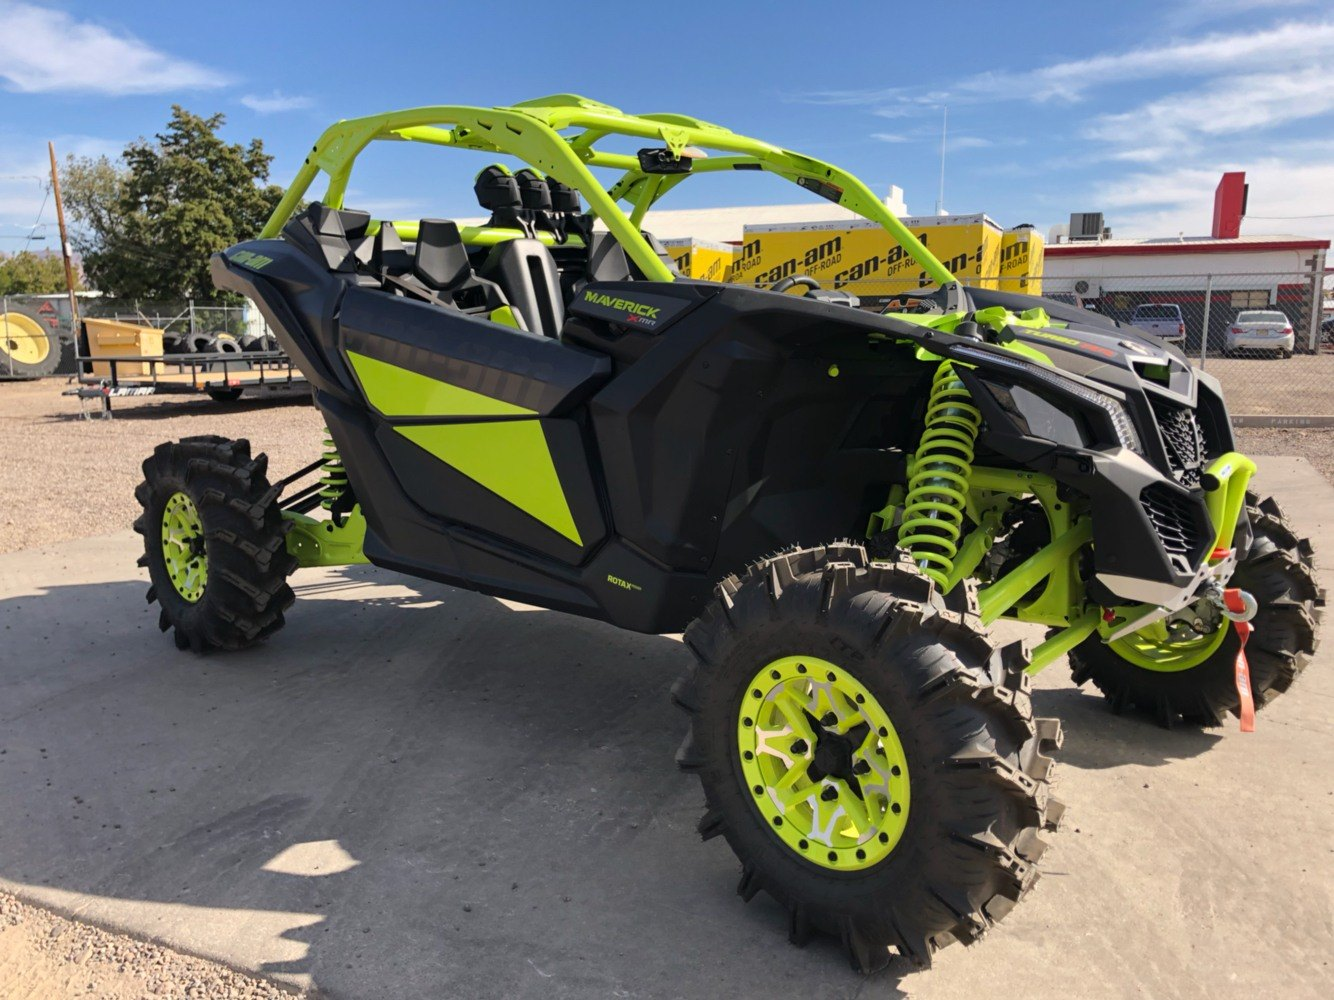 2020 Can-Am Maverick X3 X MR Turbo RR in Safford, Arizona - Photo 3